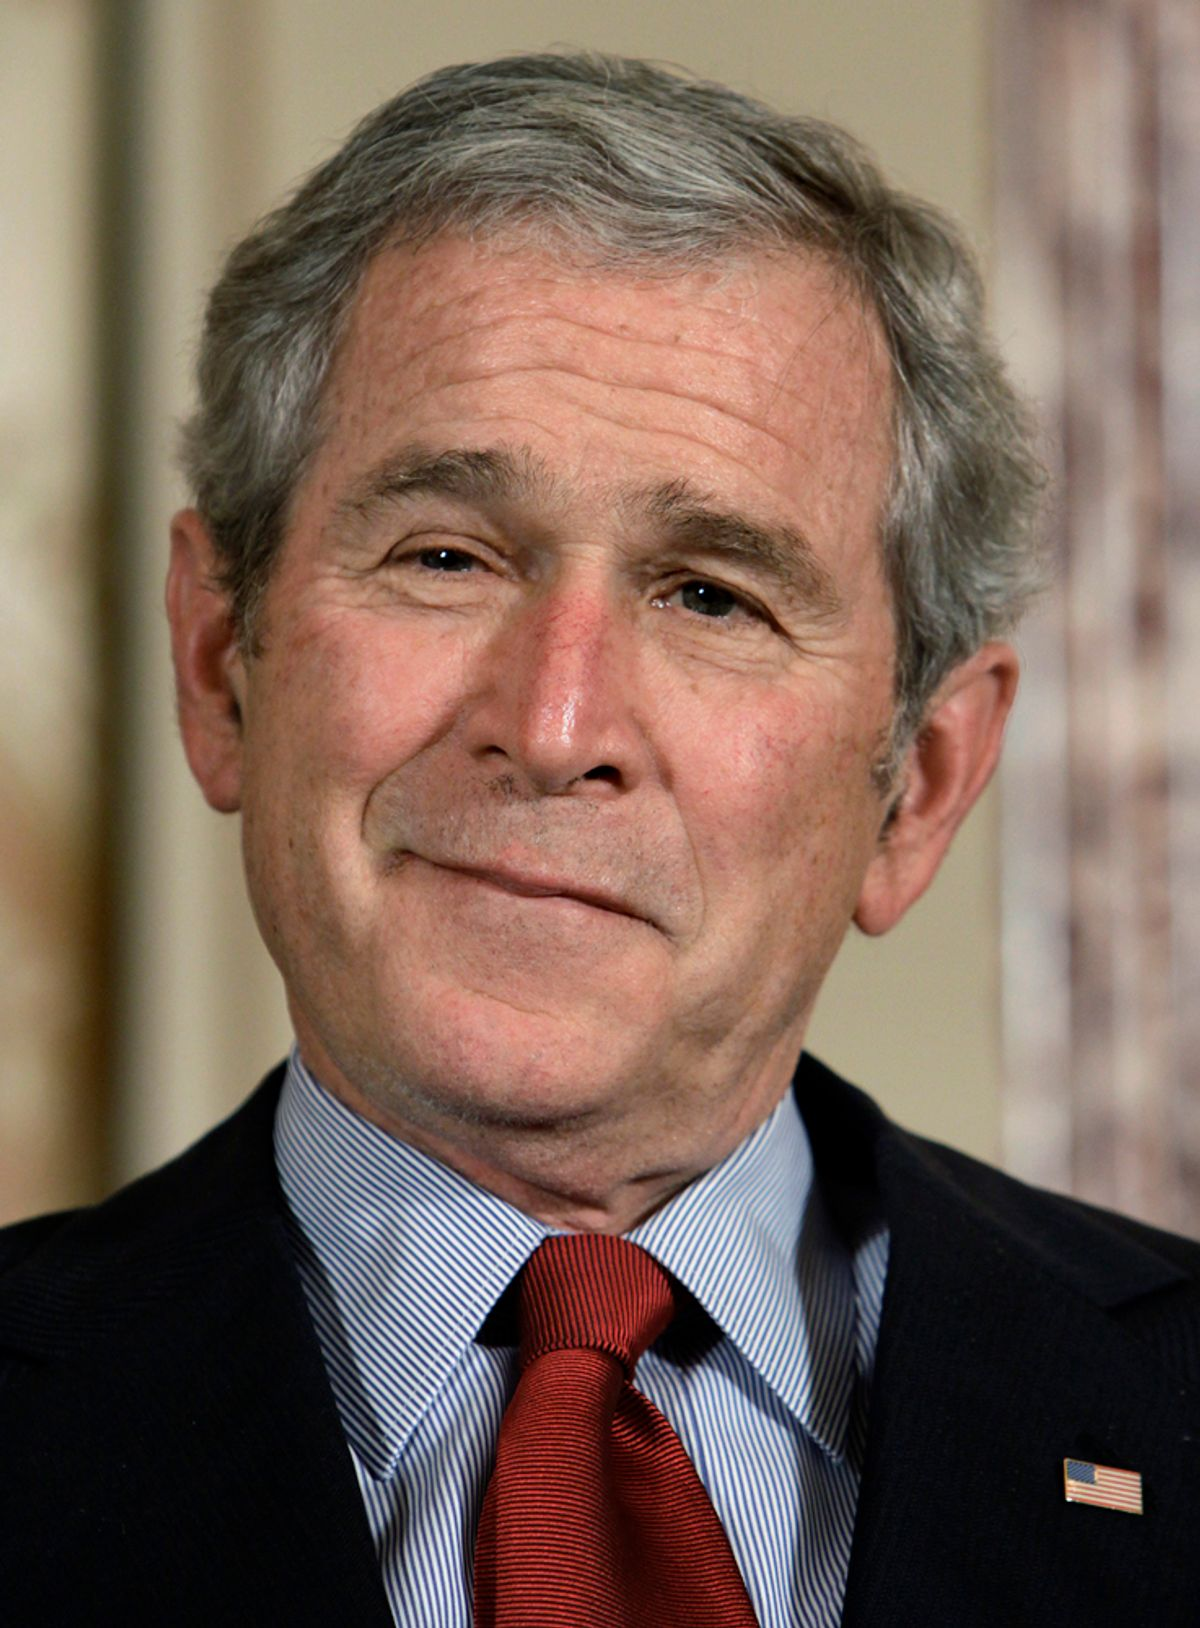 U.S. President George W. Bush attends the ceremony to commemorate foreign policy achievements at the State Department in Washington January 15, 2009. REUTERS/Yuri Gripas (UNITED STATES) (© Yuri Gripas / Reuters)